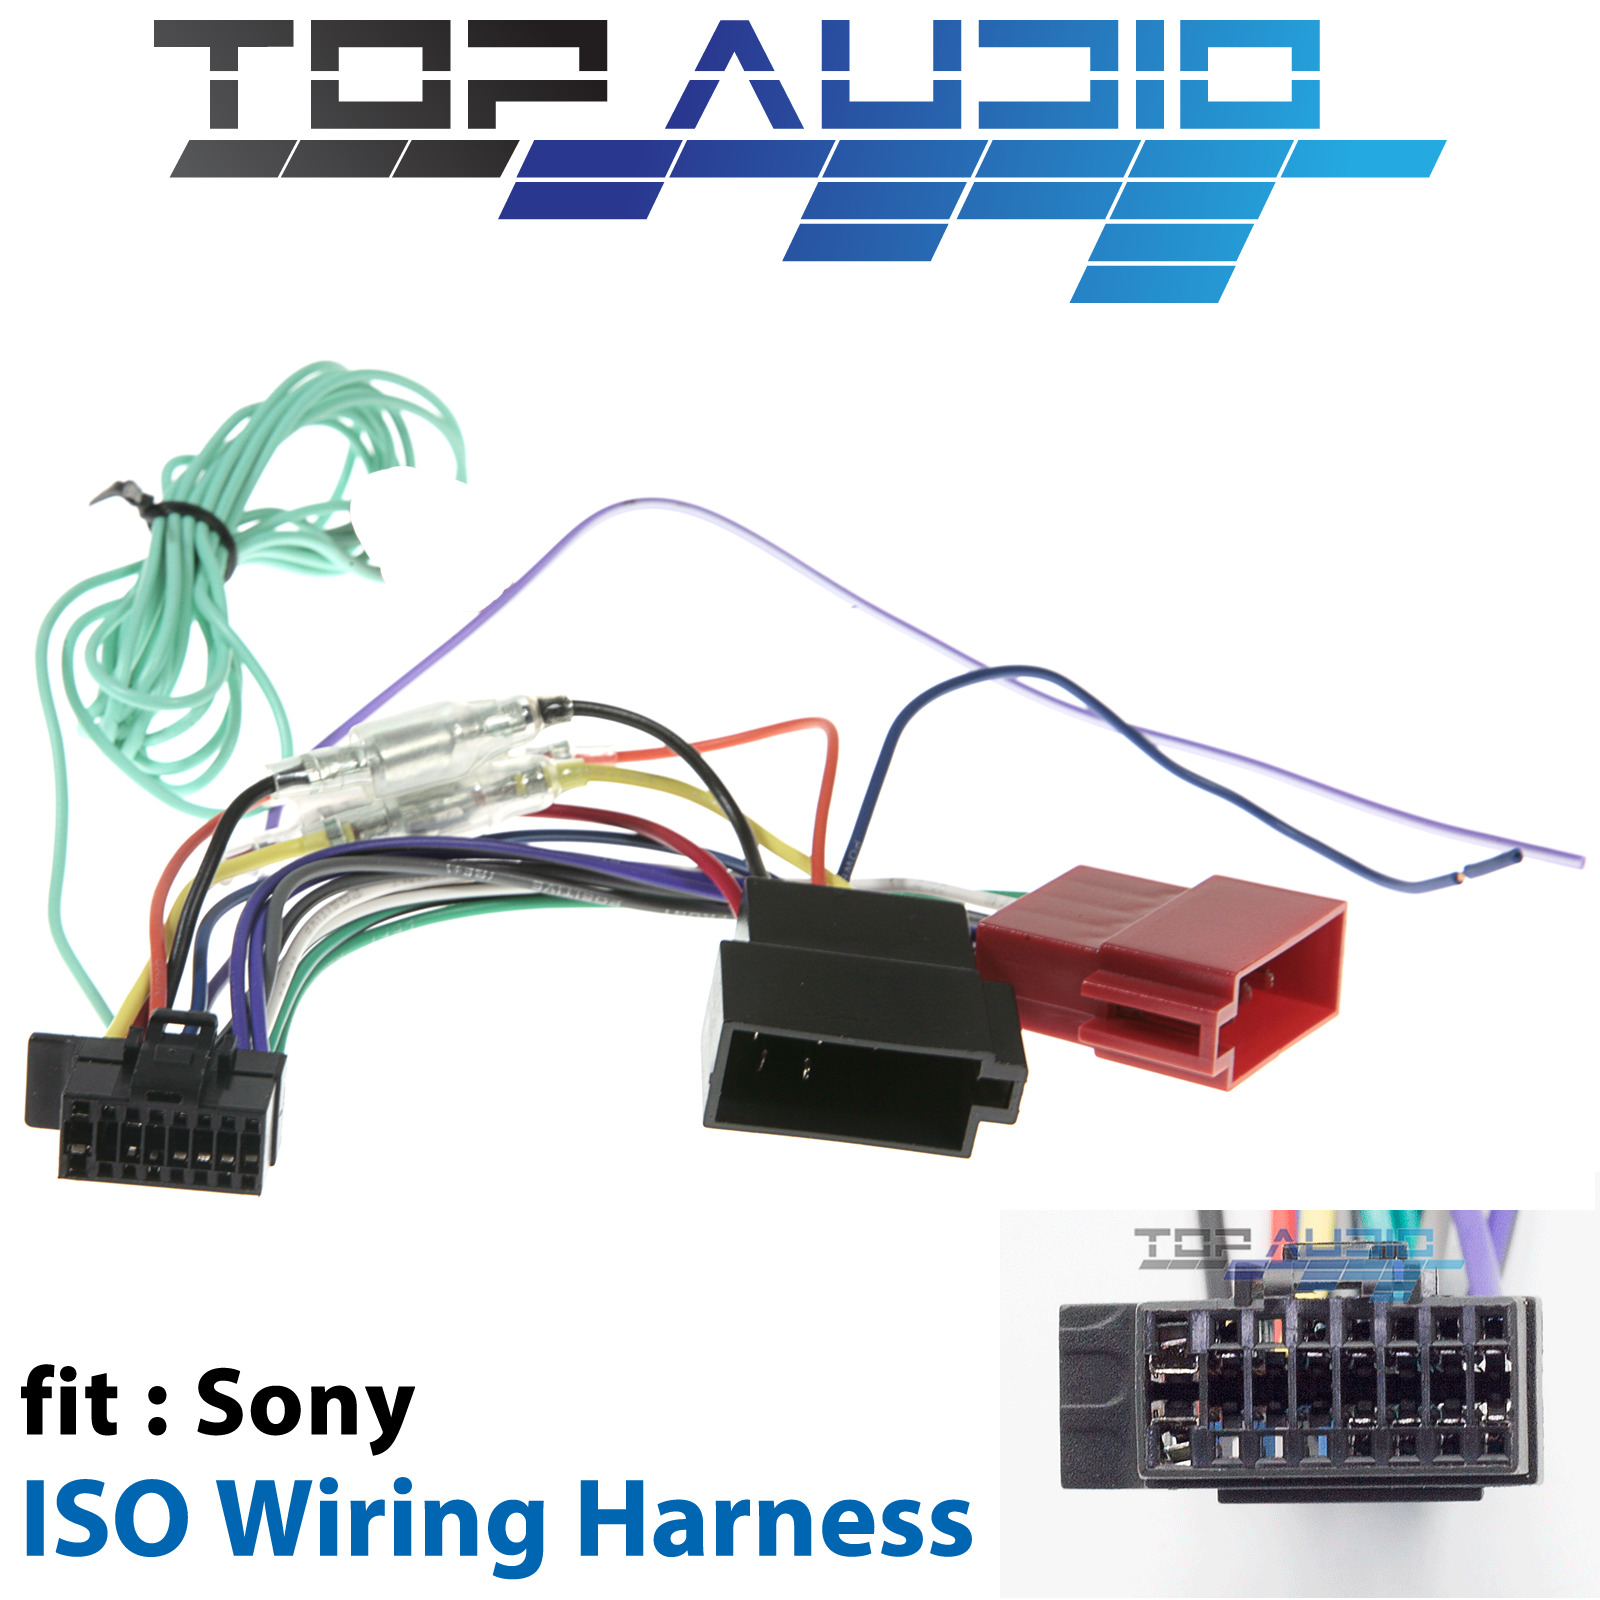 Sony Xav 65bt Iso Wiring Harness Cable Adaptor Connector Lead Loom About Car Stereo Cd Player Wire Adapter For Jvc Plug 1 Of 4only 5 Available